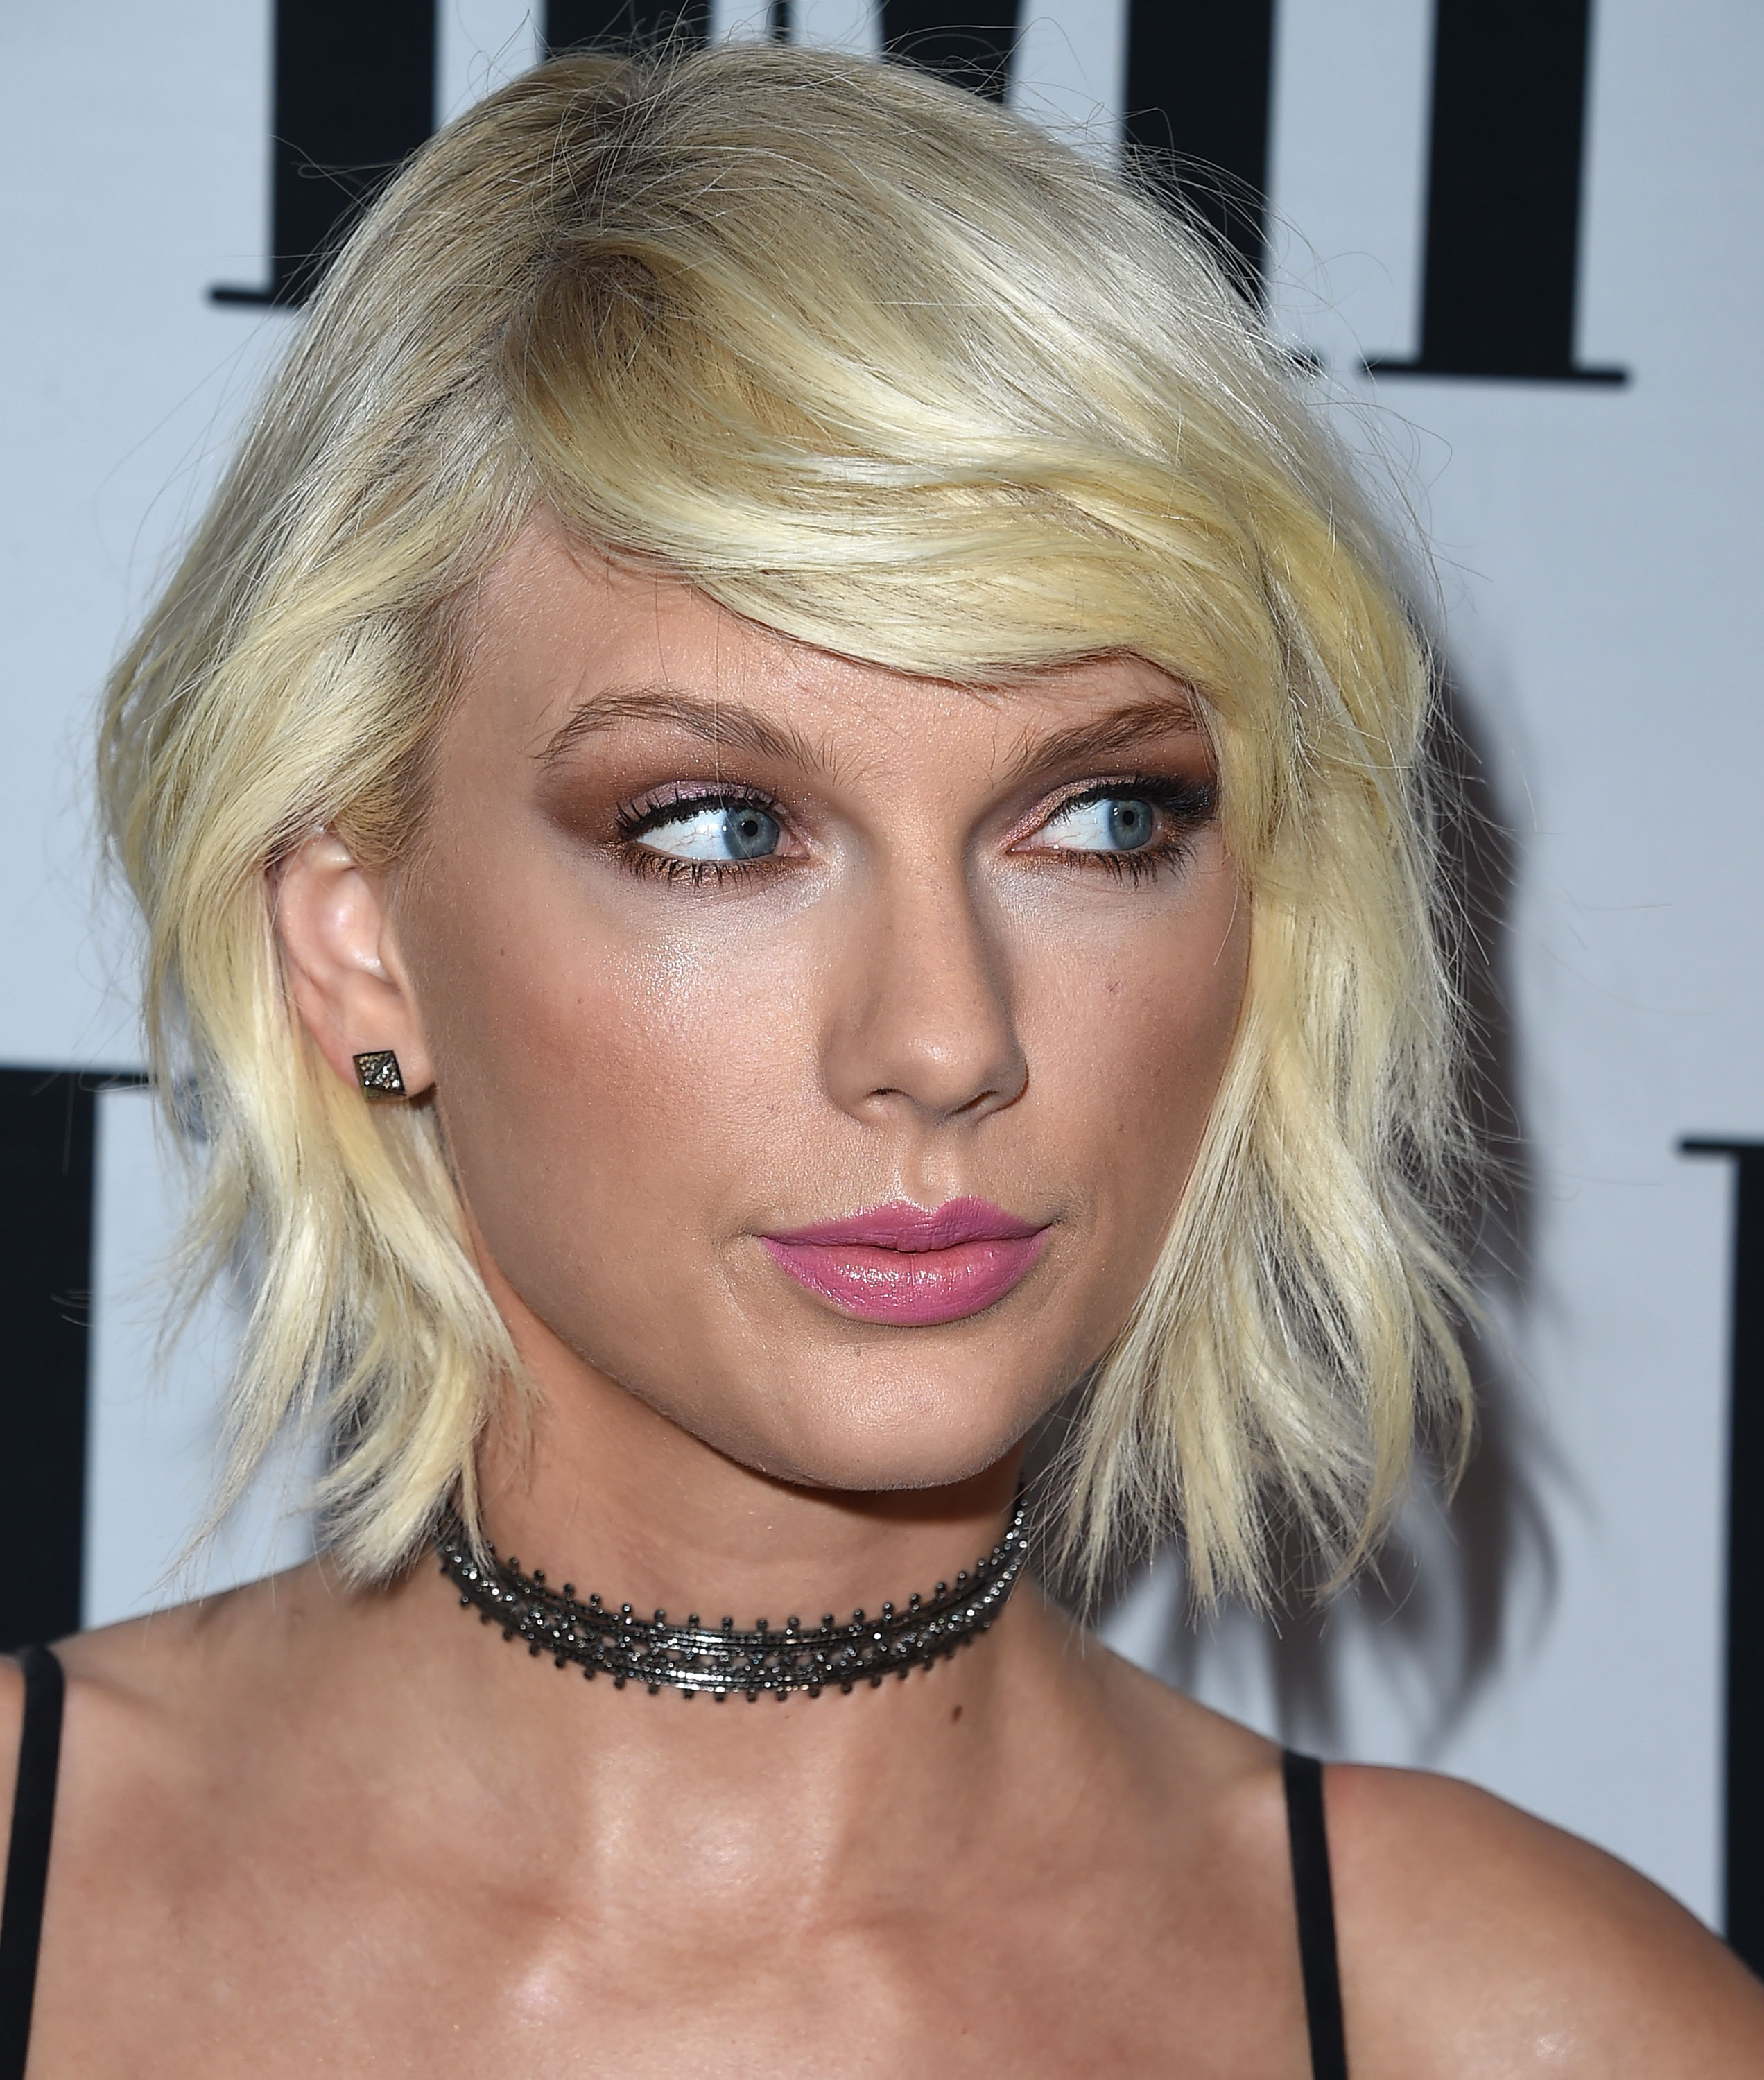 Taylor Swift just did the weirdest crab walk while sneaking out of the gym and it's amazing